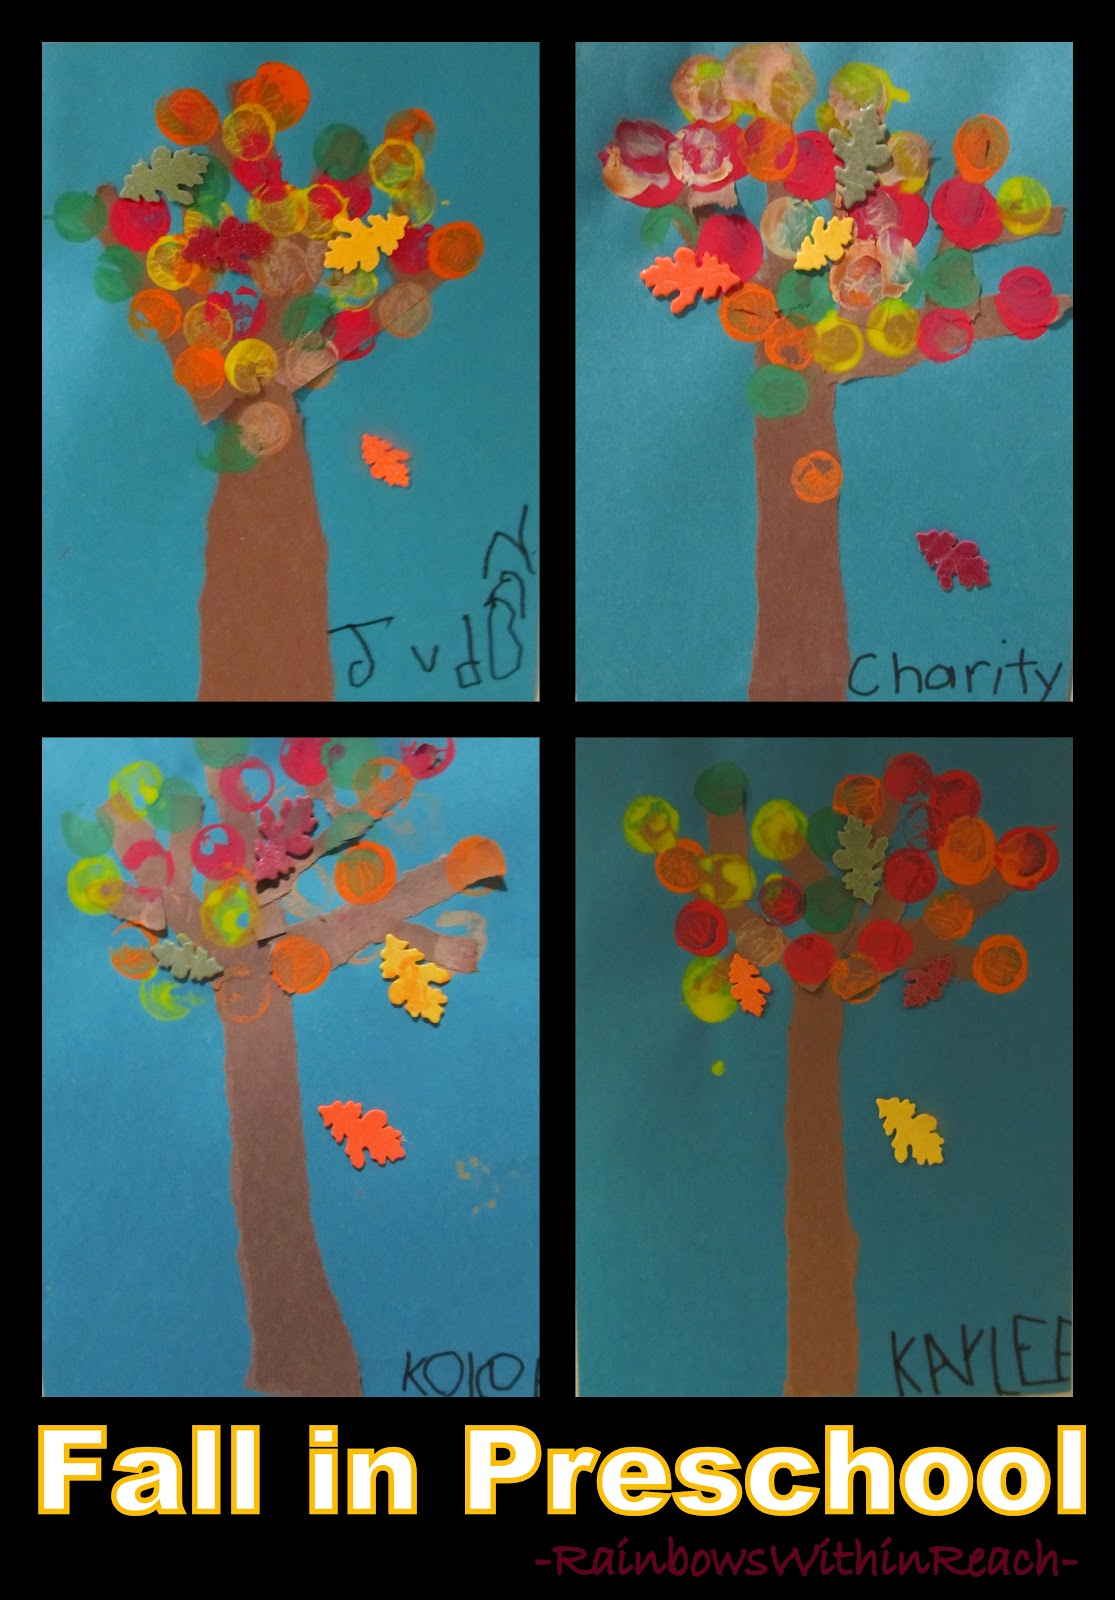 for Fall arts and crafts for preschoolers